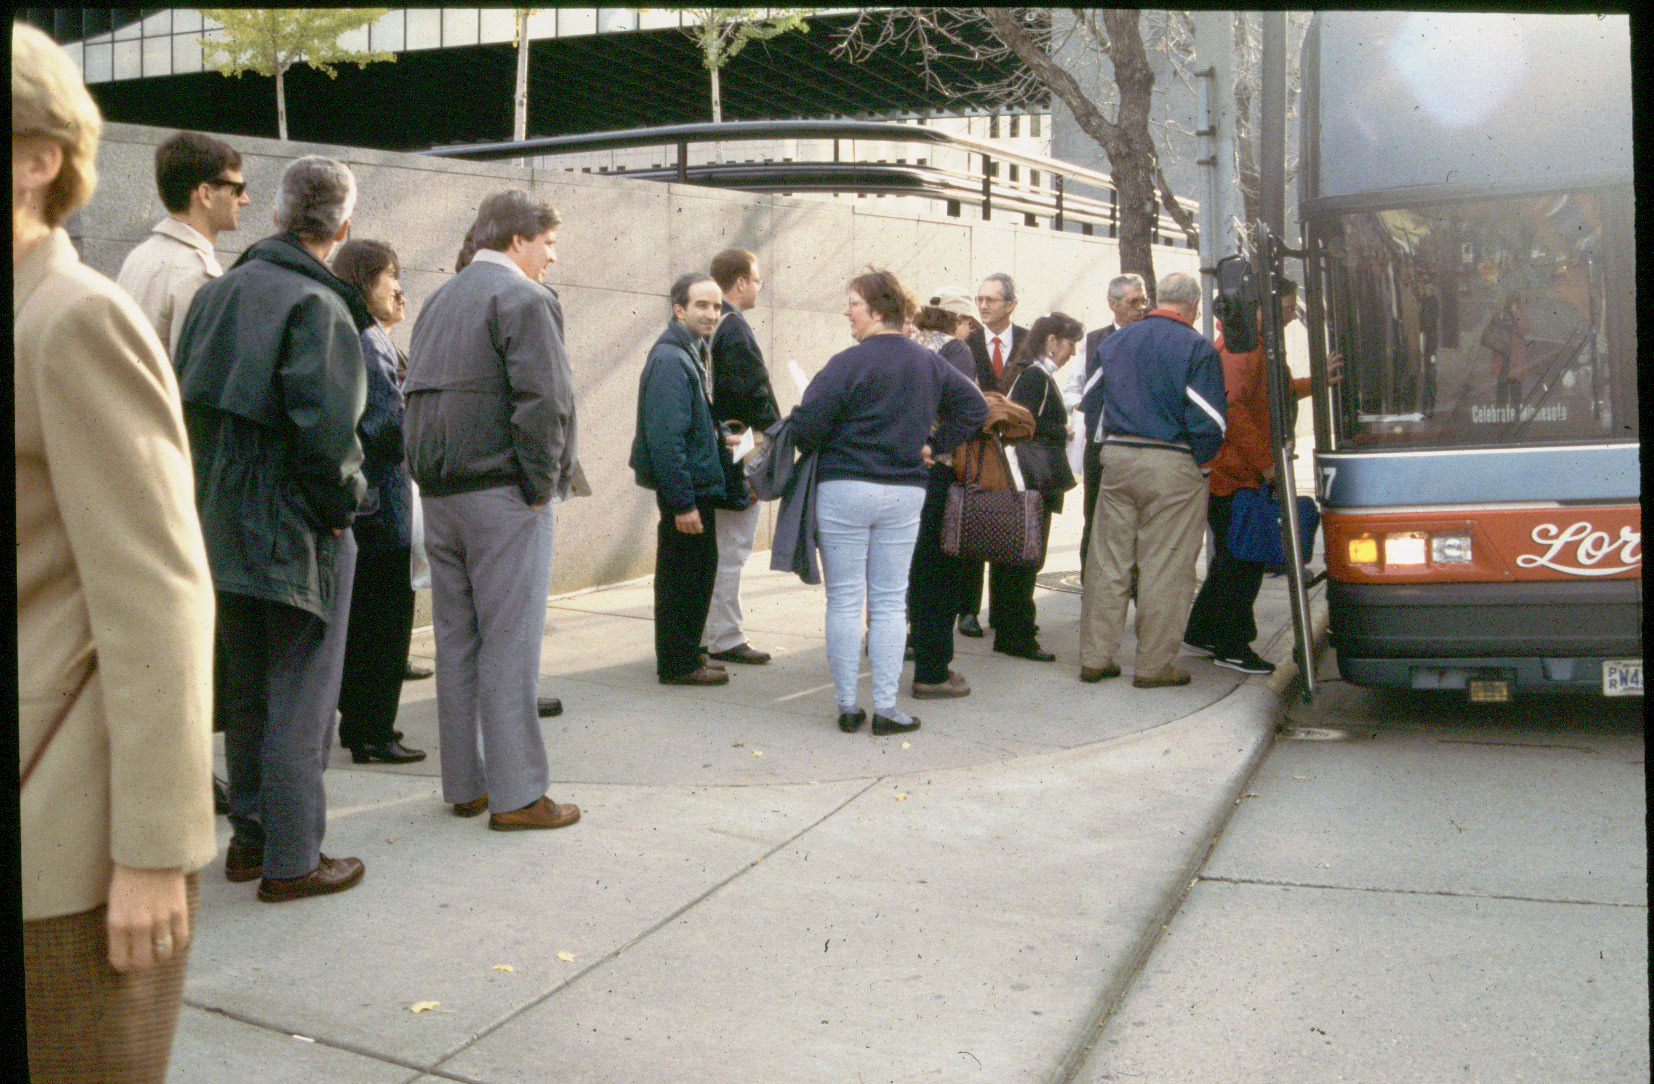 Waiting for the bus 1996